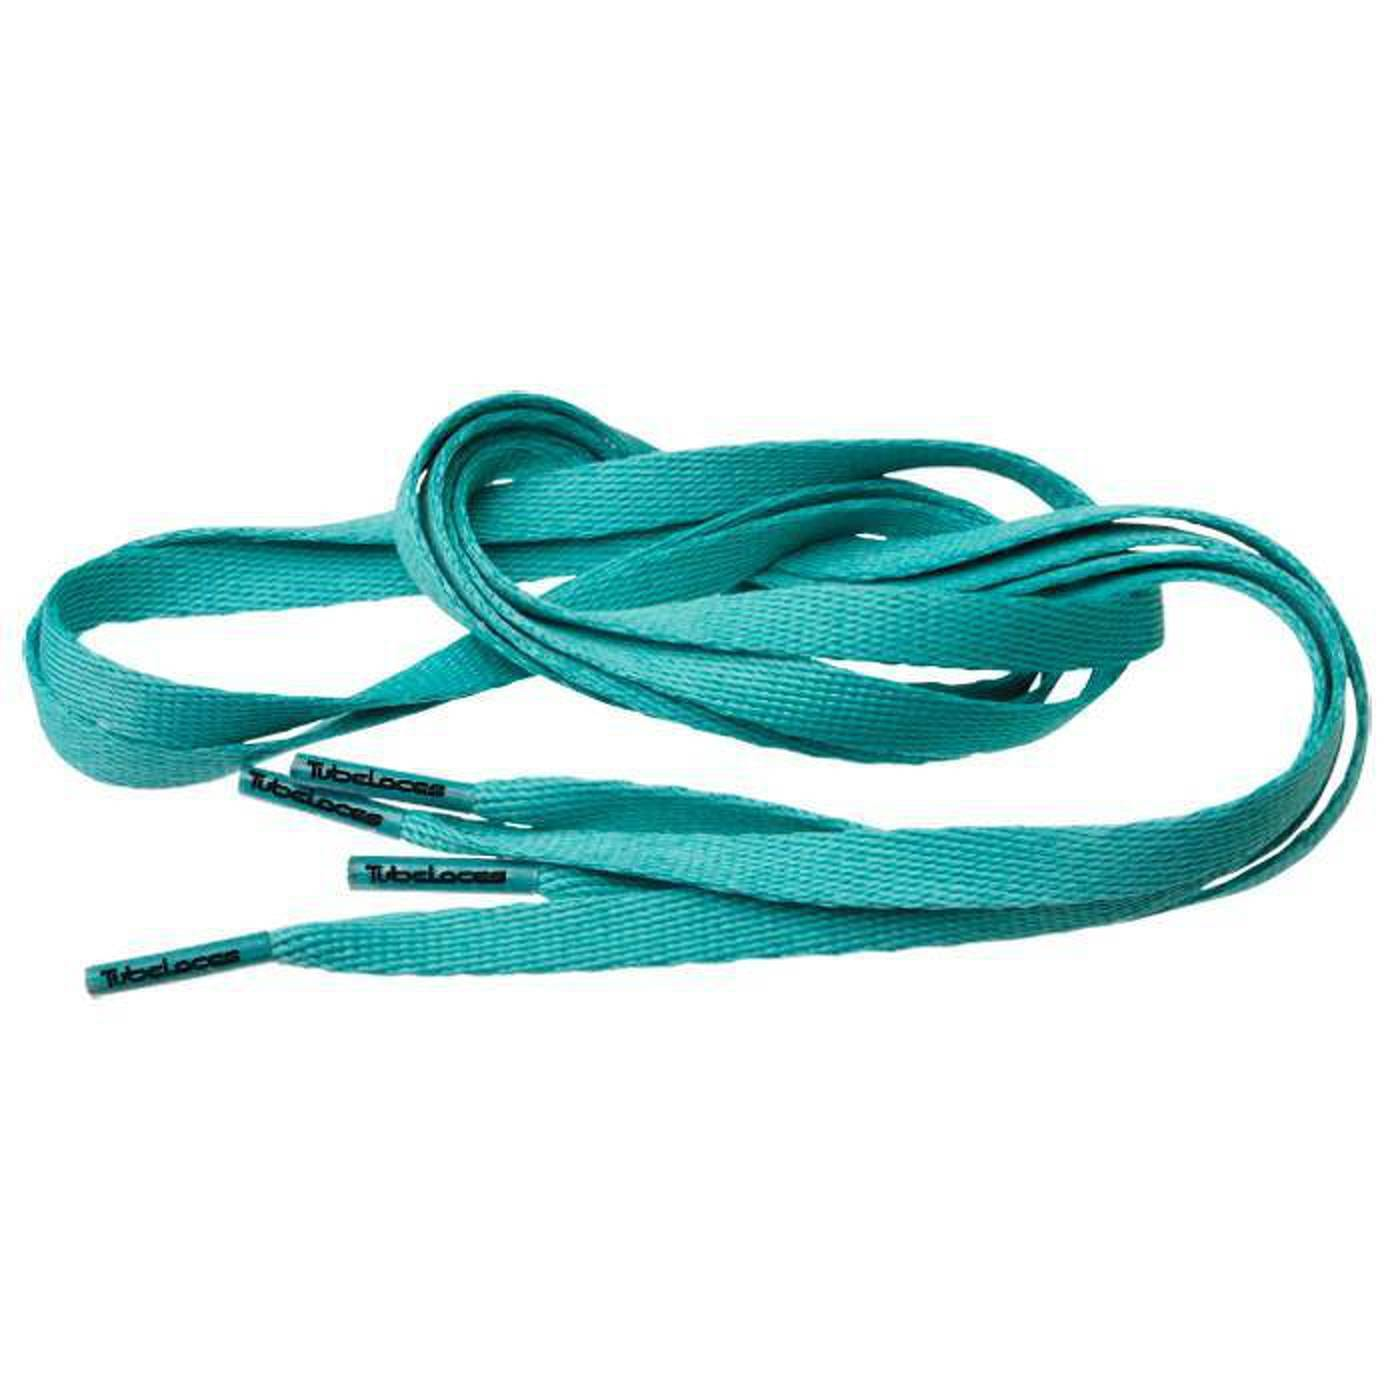 MD Tube Laces 120 light blue